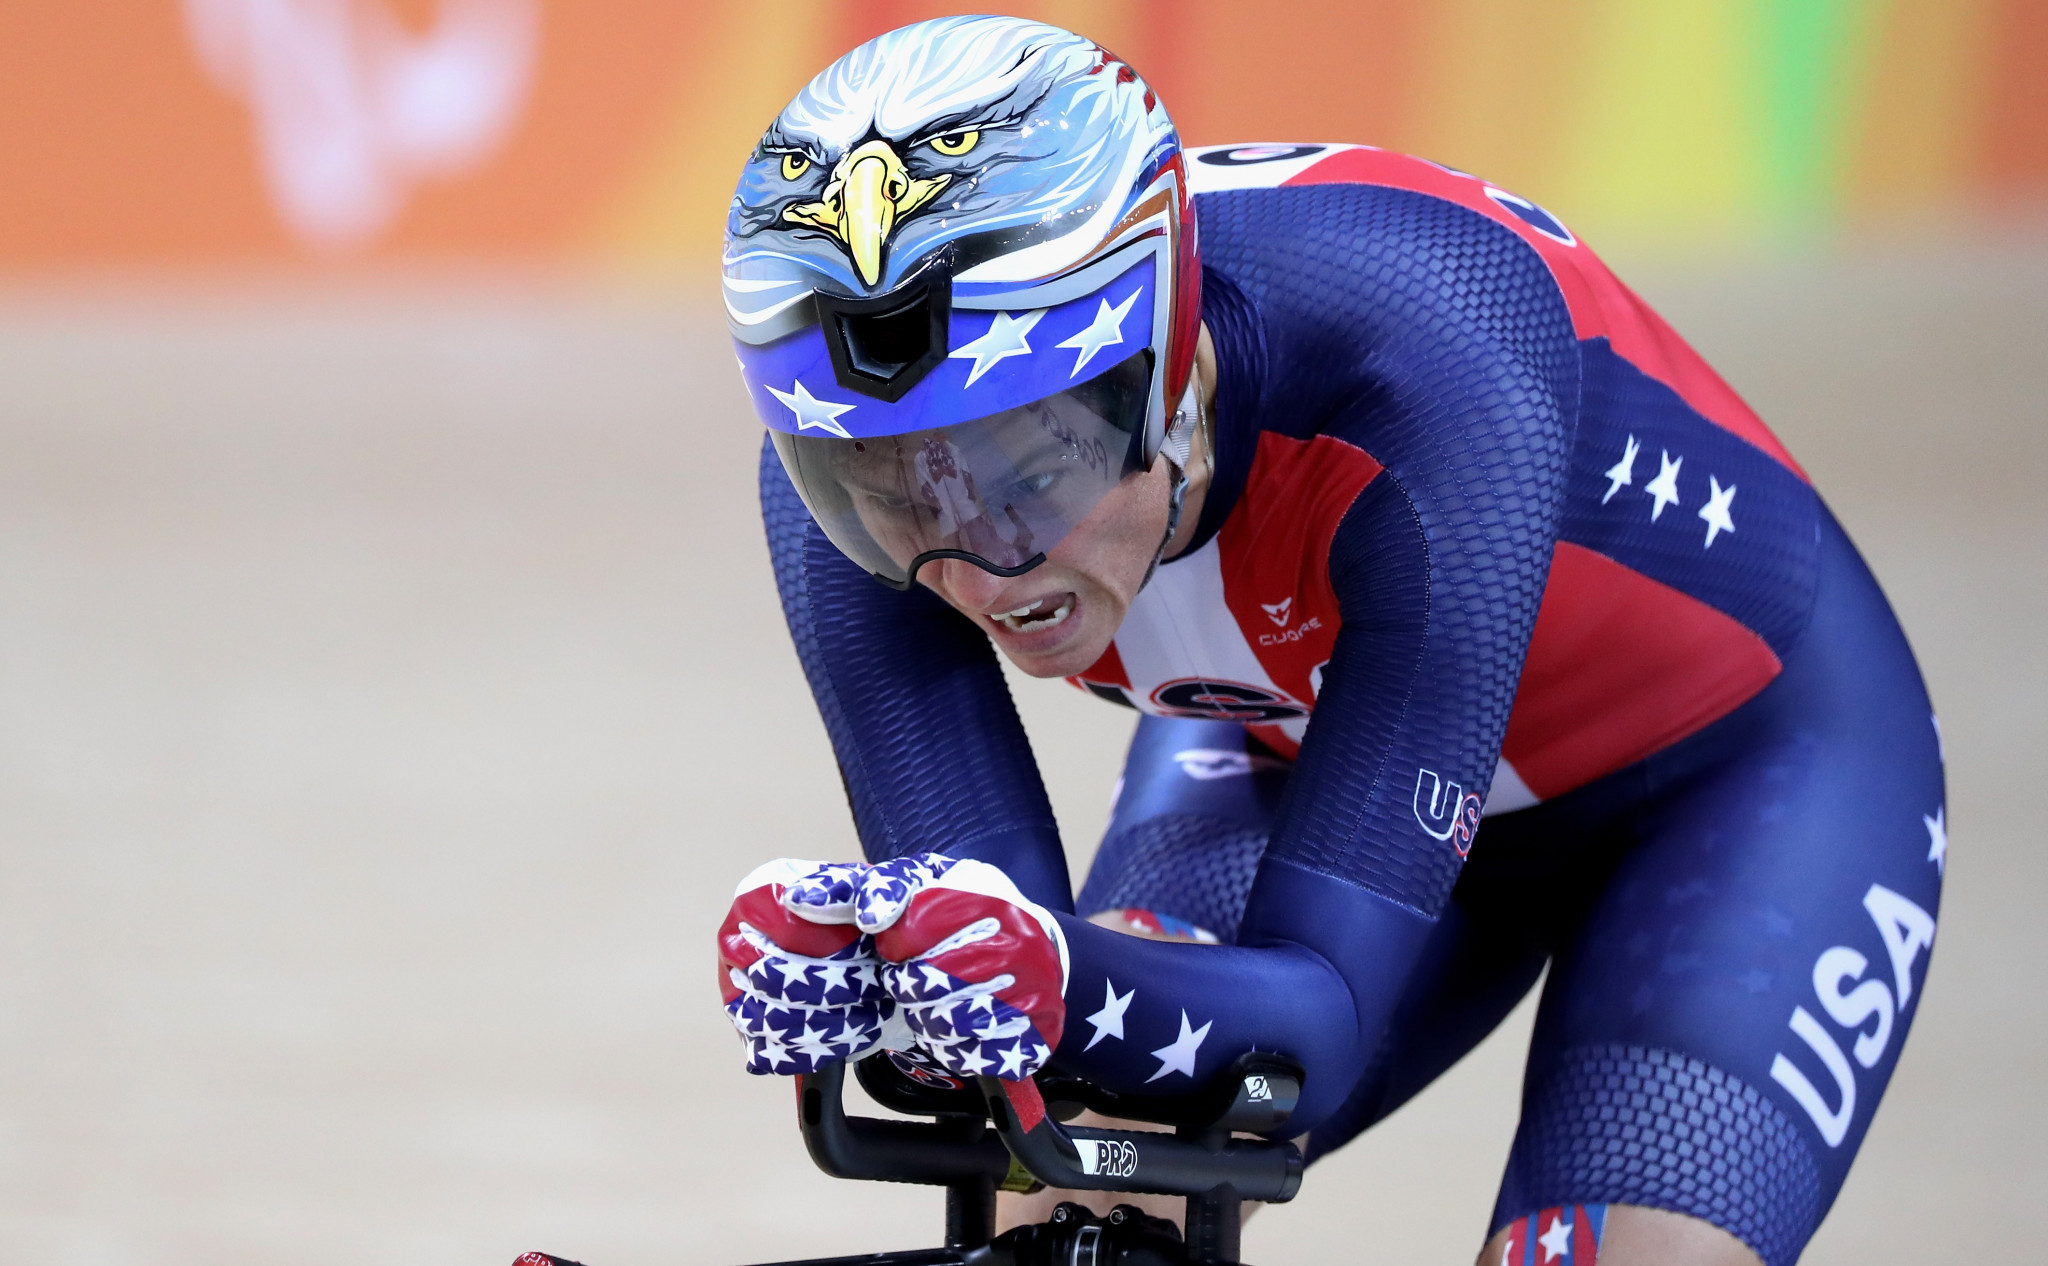 Shawn Morelli of the United States took the women's C4 individual pursuit honours ©Getty Images